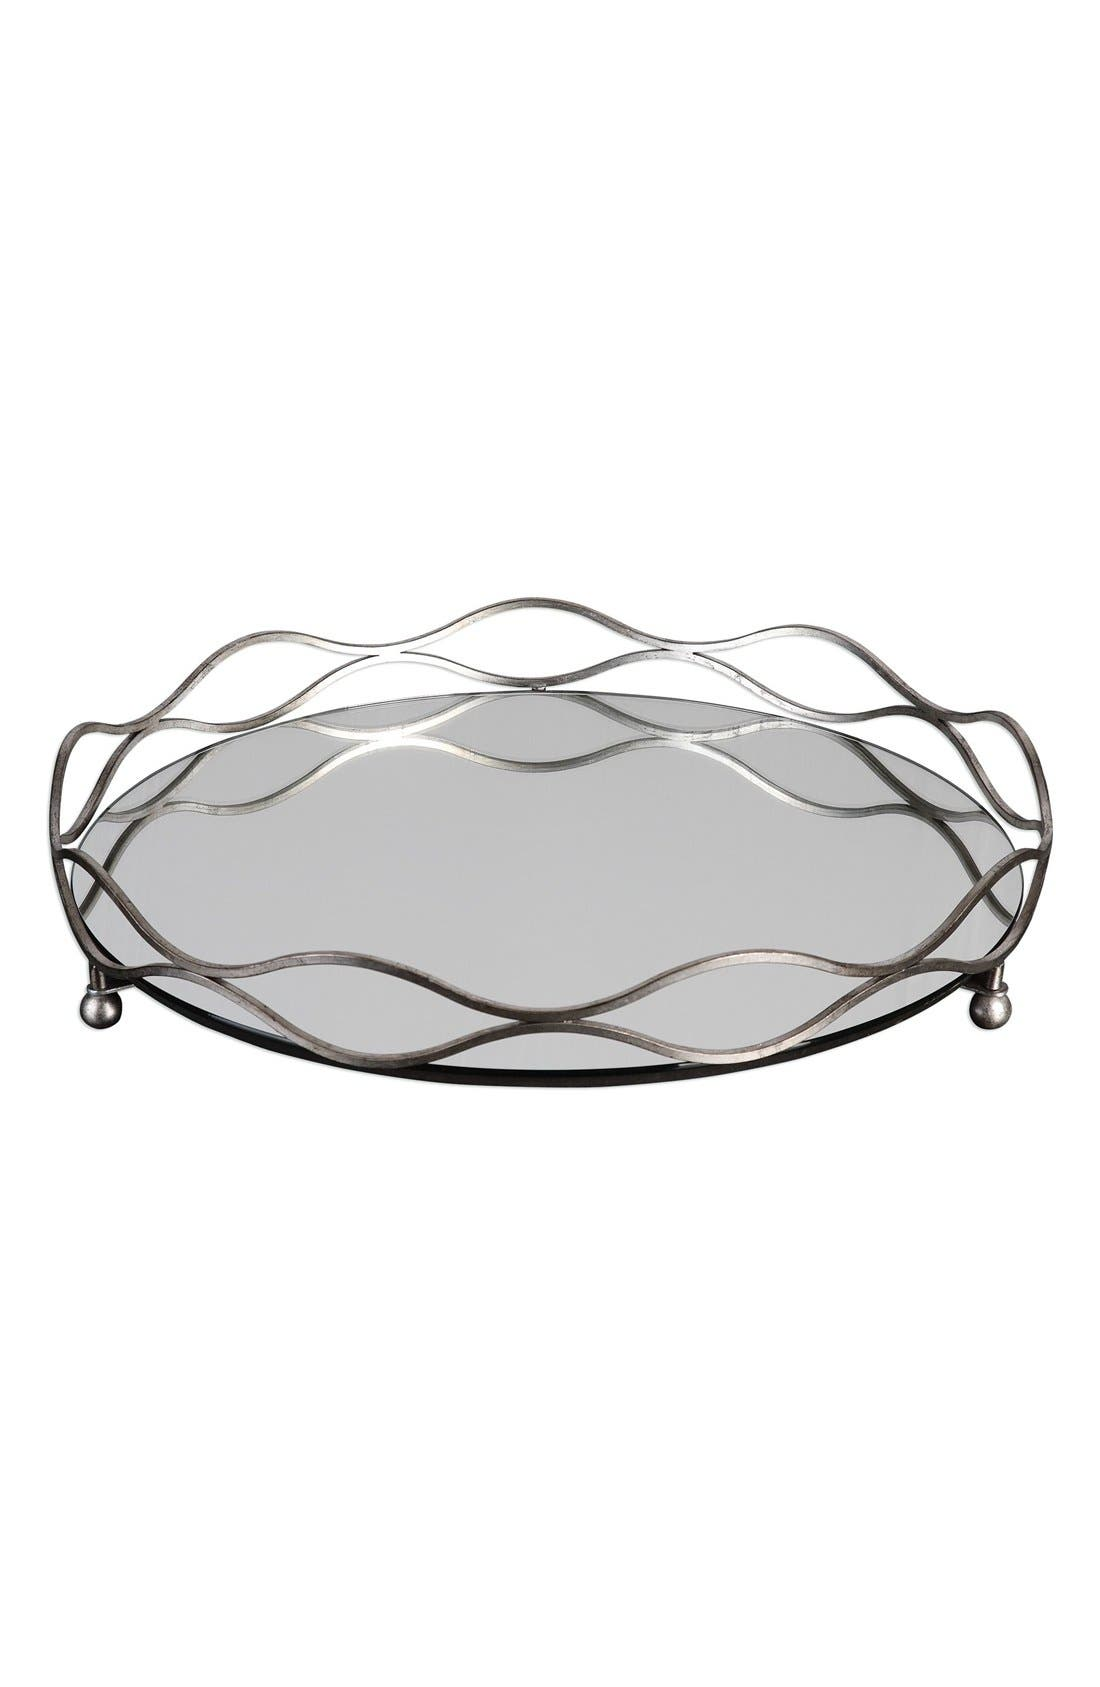 Alternate Image 1 Selected - Uttermost Mirrored Tray